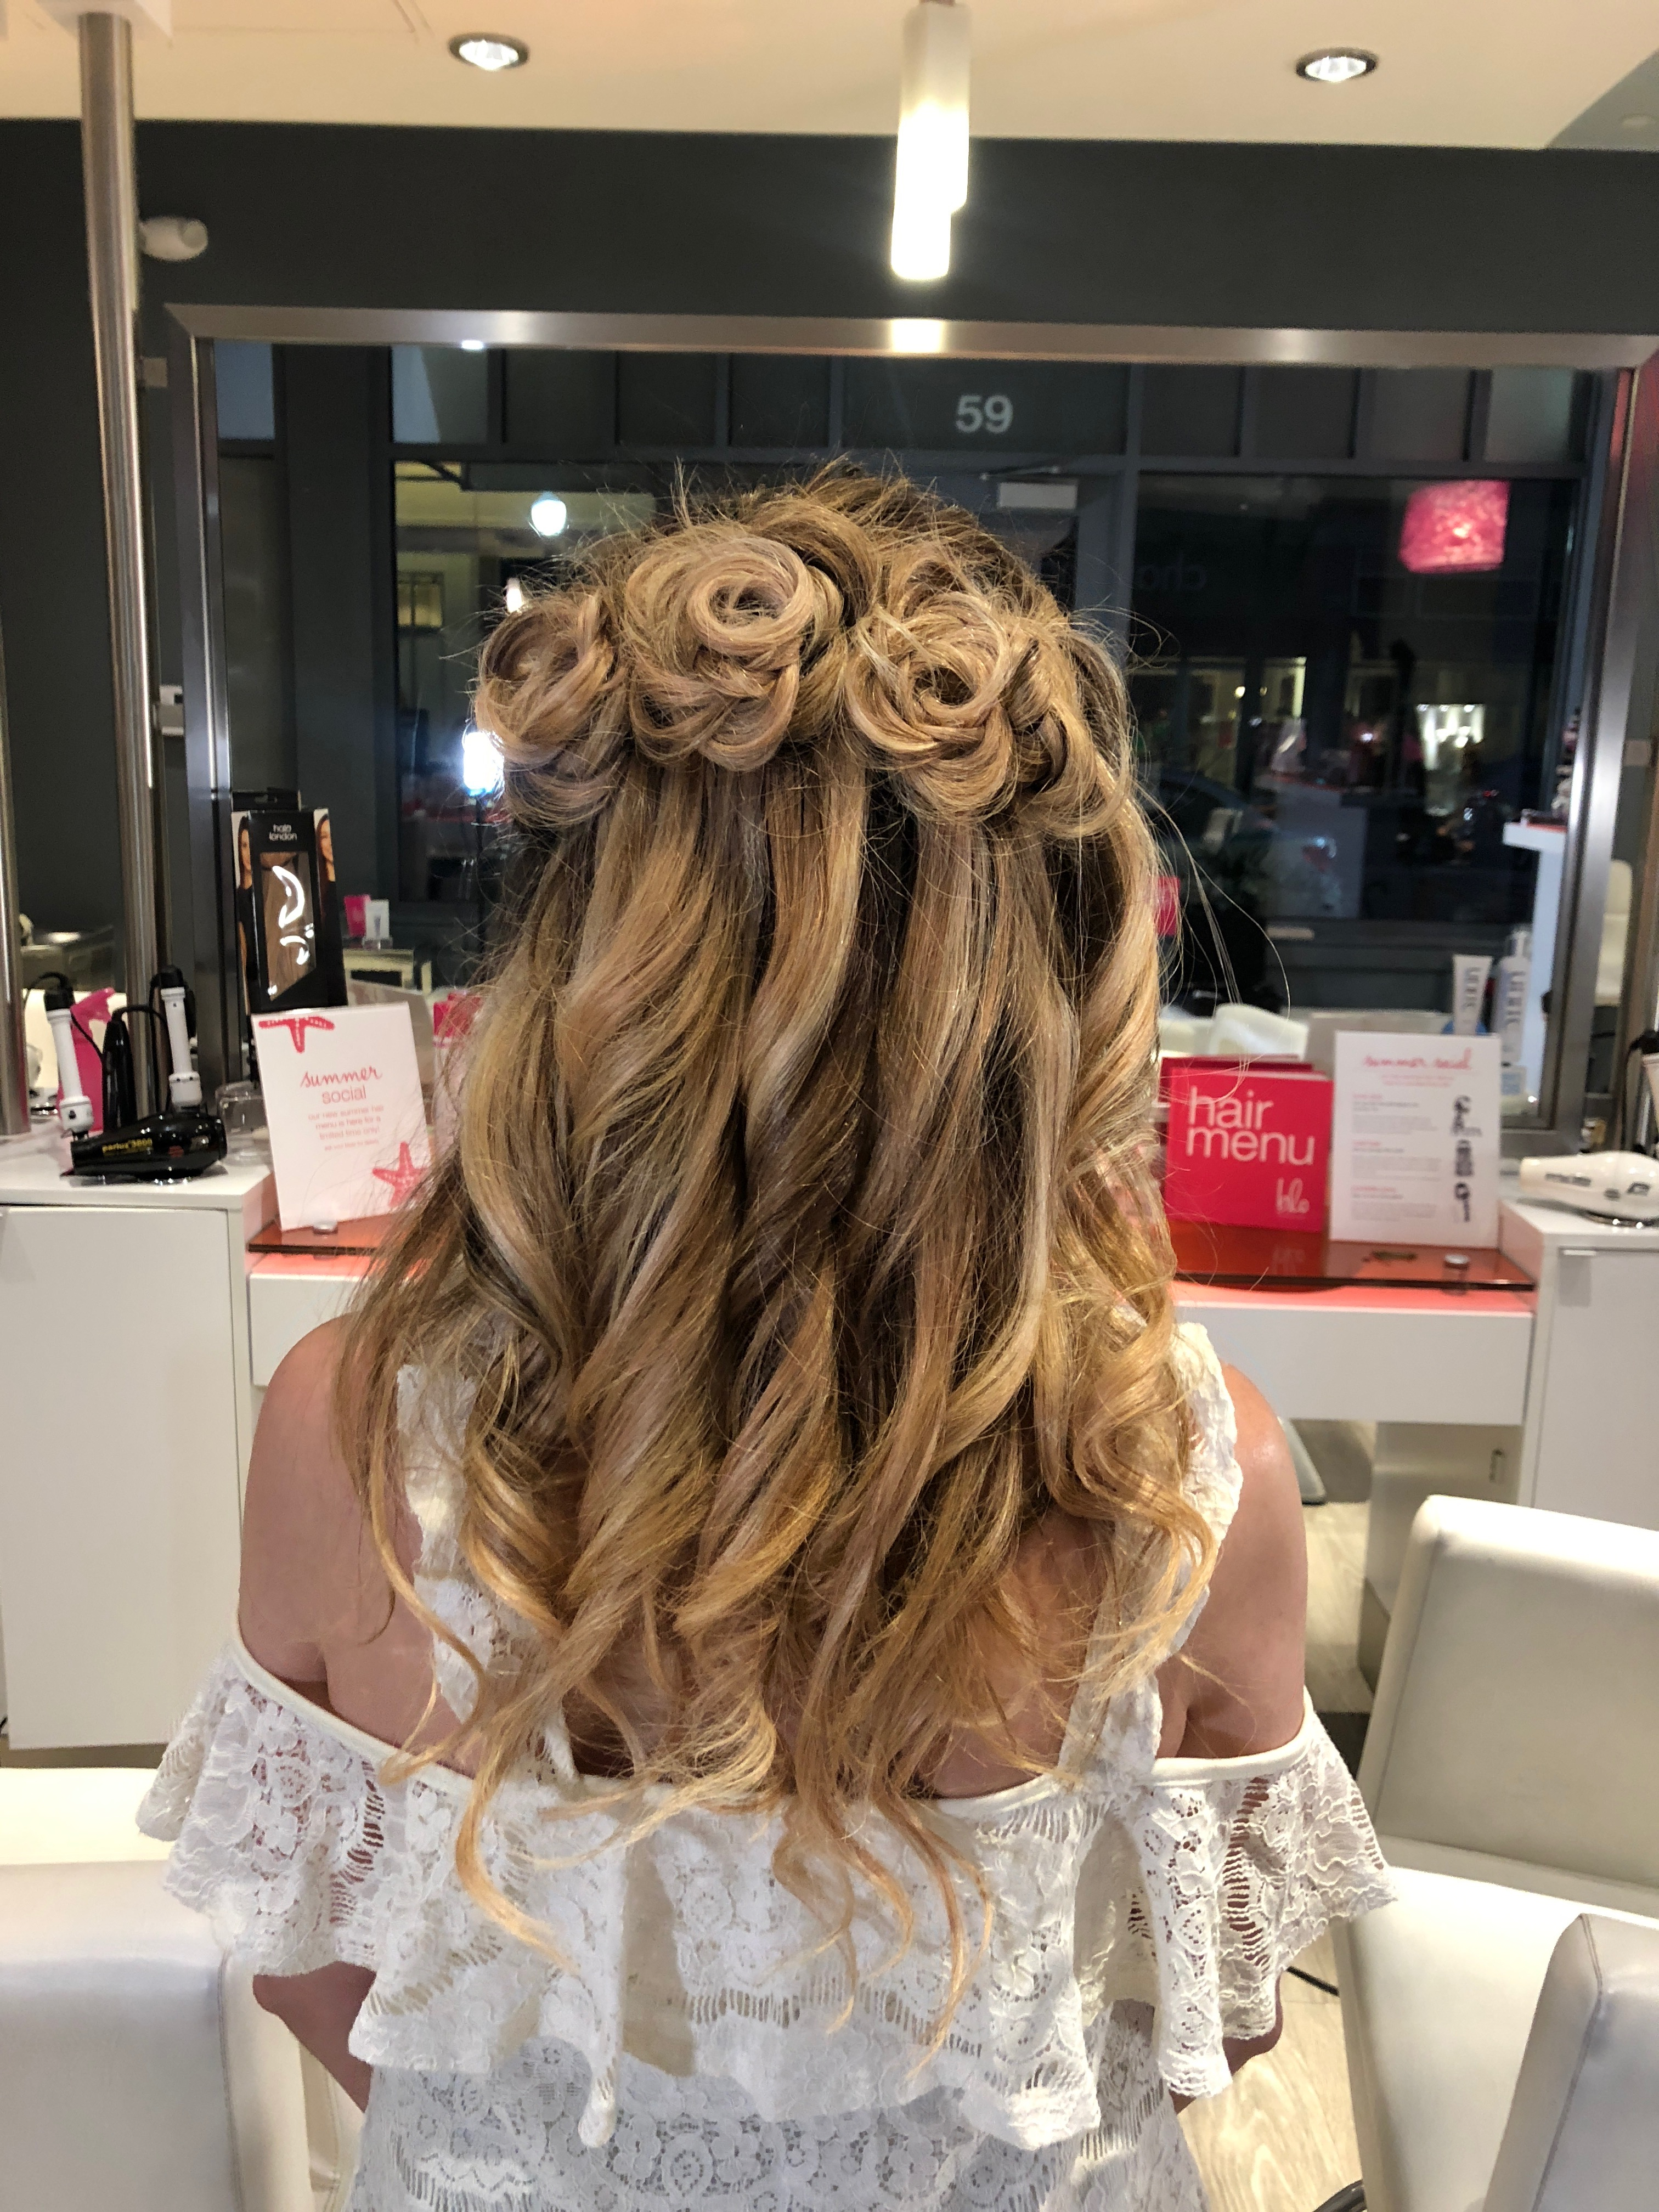 Summer Hairstyles: How to Create Rose Braids - Style Context